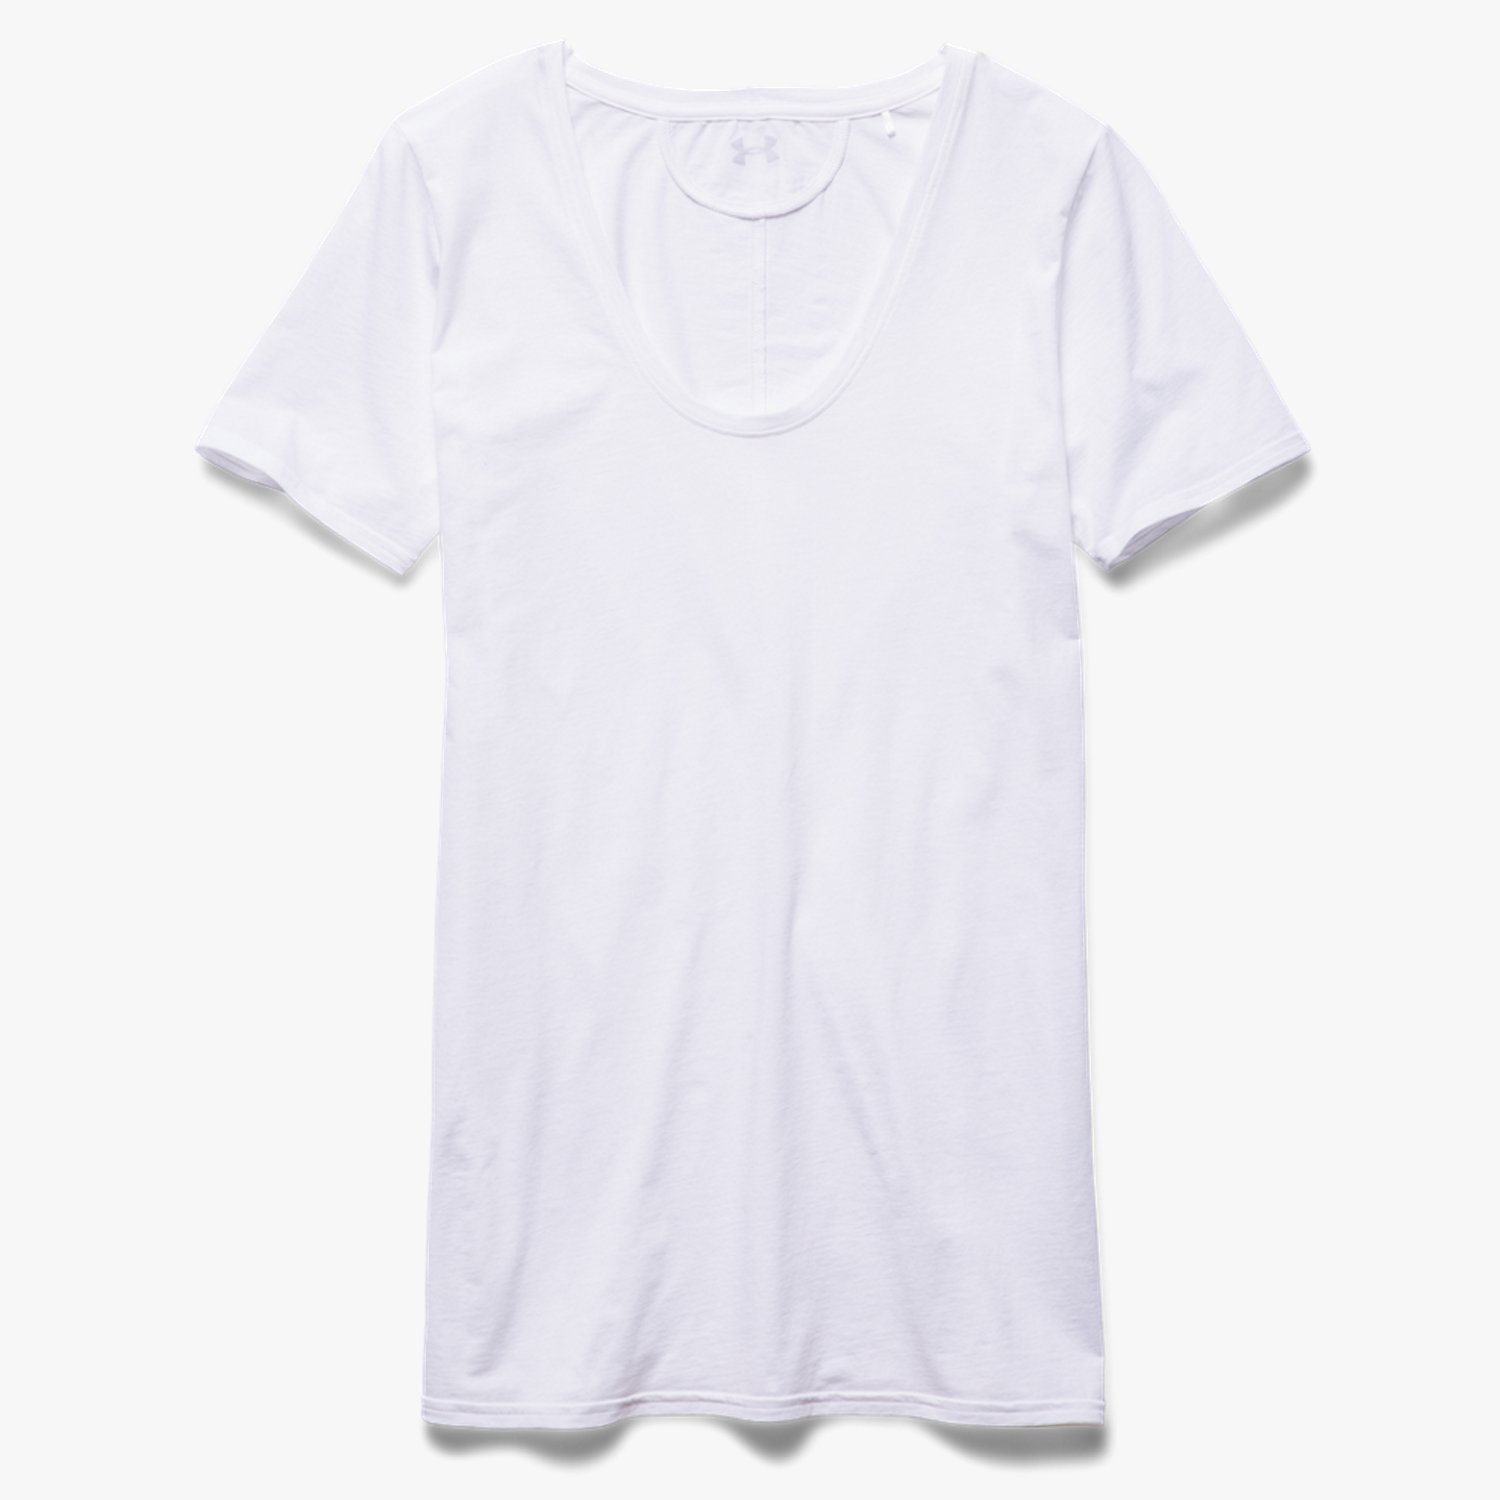 Under Armour UA Long & Lean Scoop Neck White/White-30